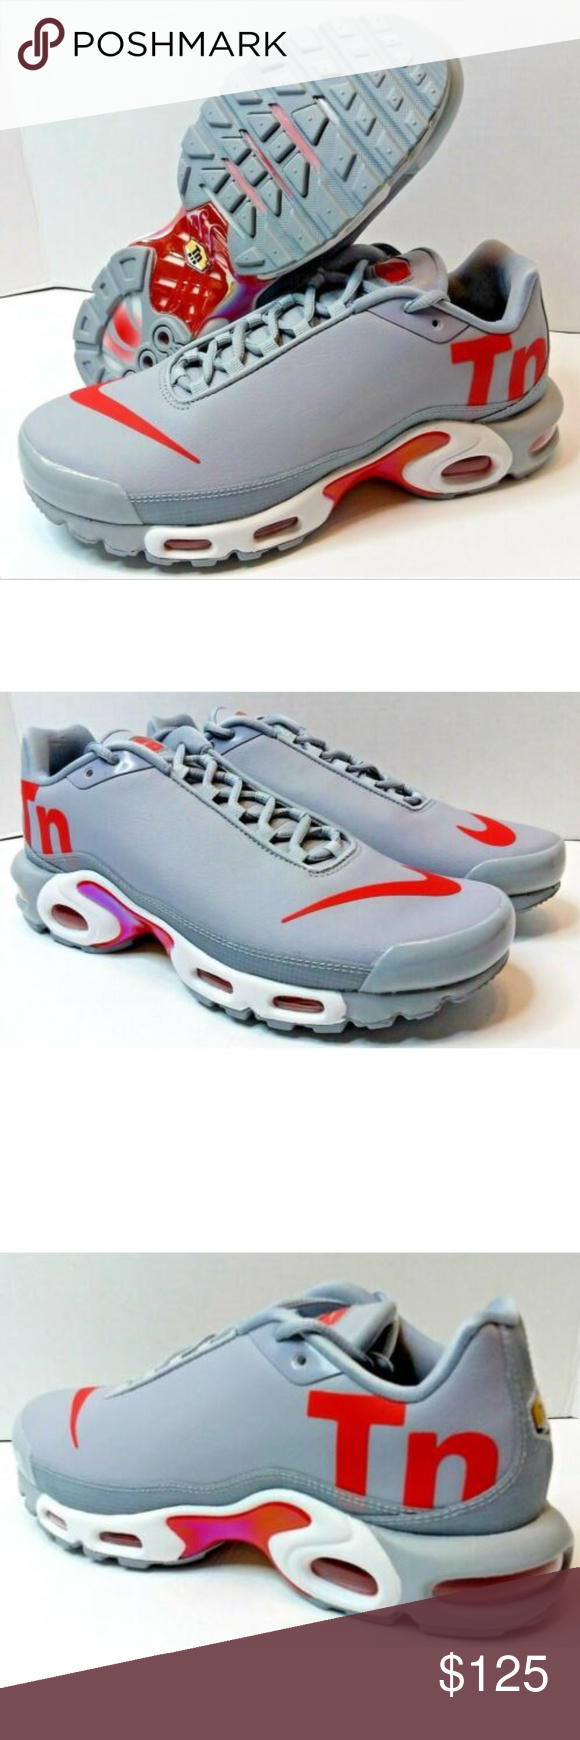 ab105071b13 Nike Air Max Plus TN Mercurial Mens Running Shoes Nike Air Max Plus TN  Mercurial Wolf Grey Red Running Mens Size 9 AQ1088-001 Stretch synthetic  upper ...